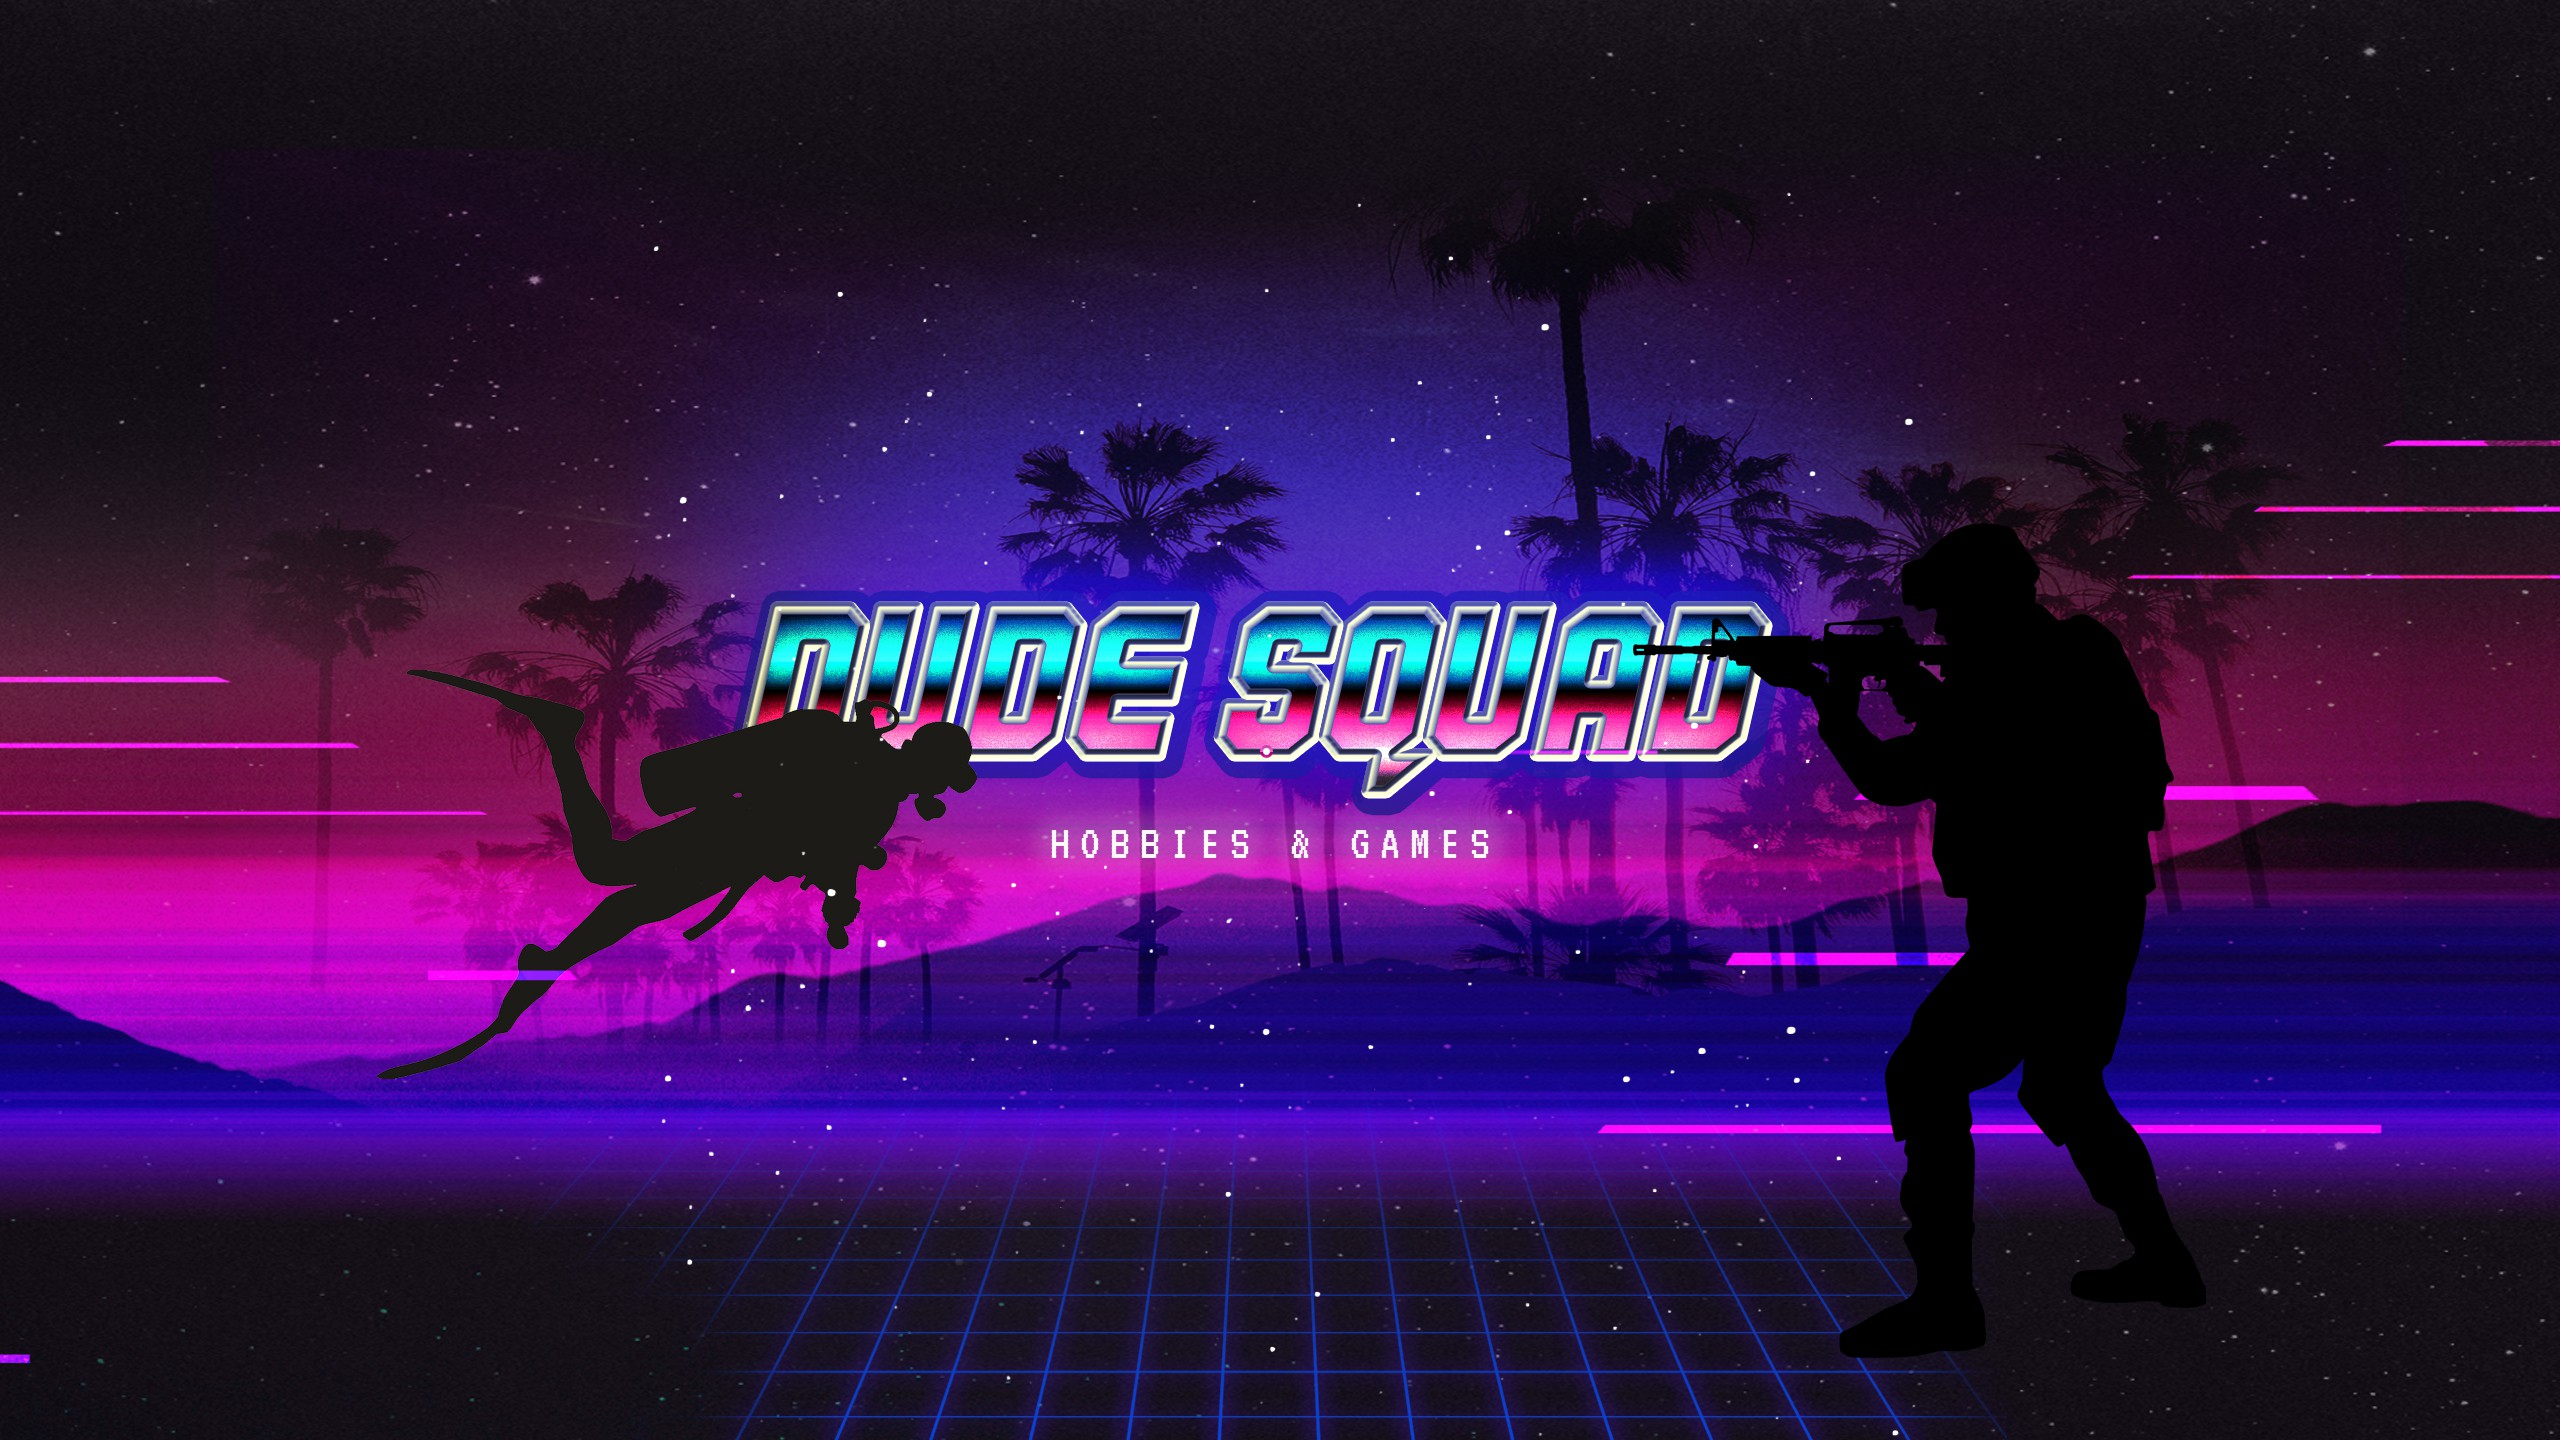 Create a cool RETRO banner for the YouTube channel DUDE Squad